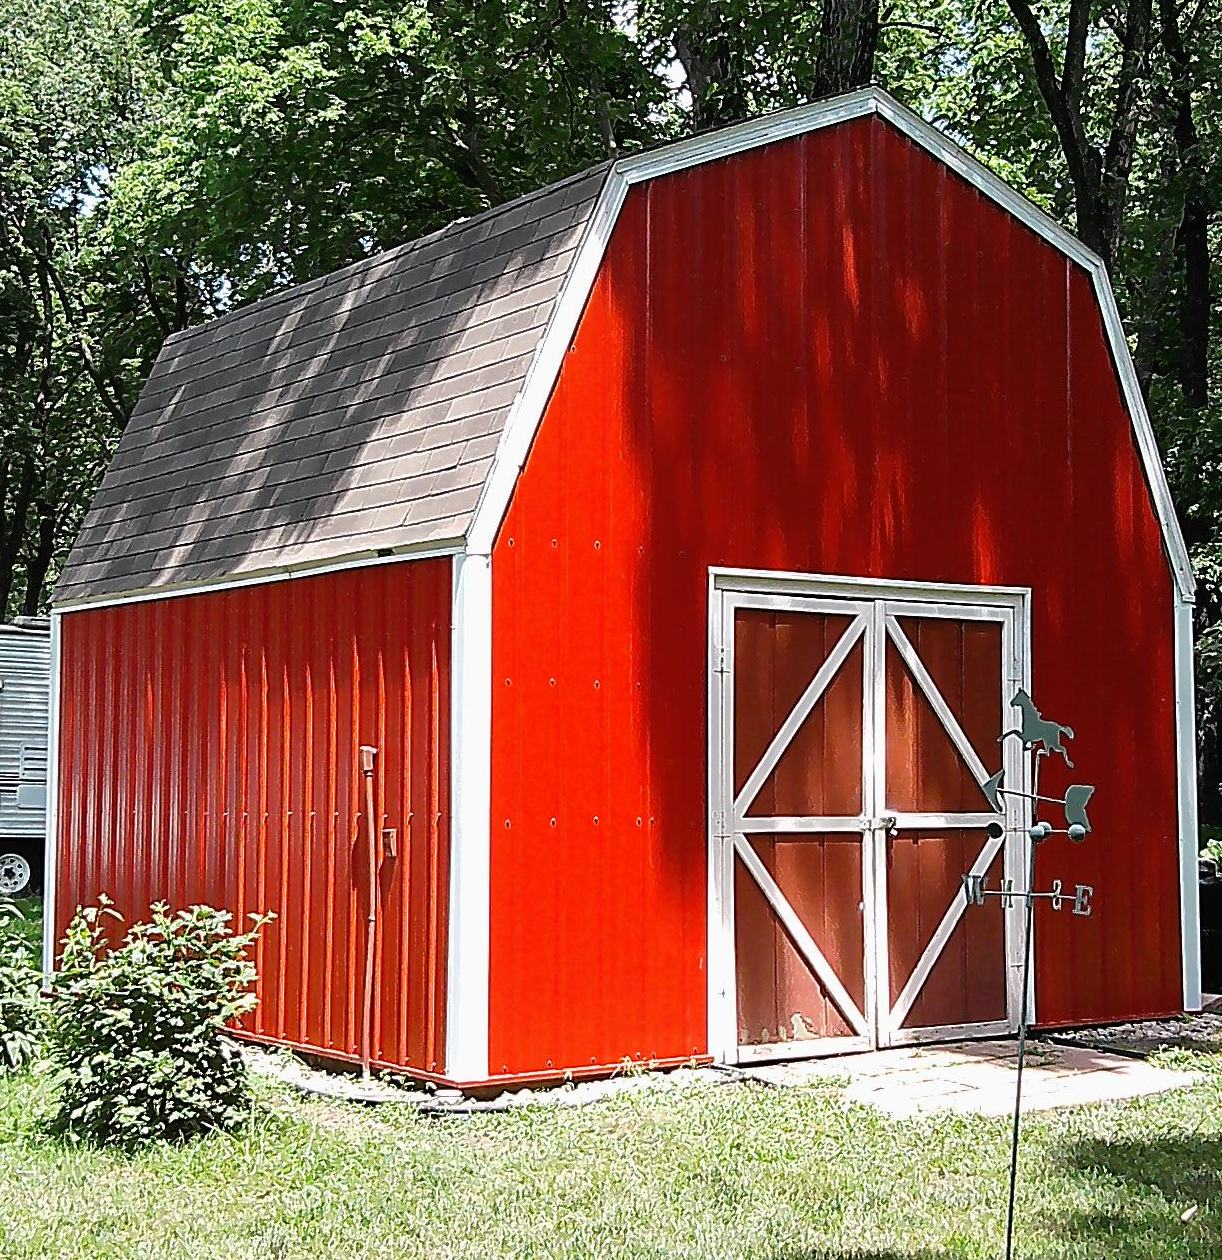 River valley quality builders services How to build a small pole barn